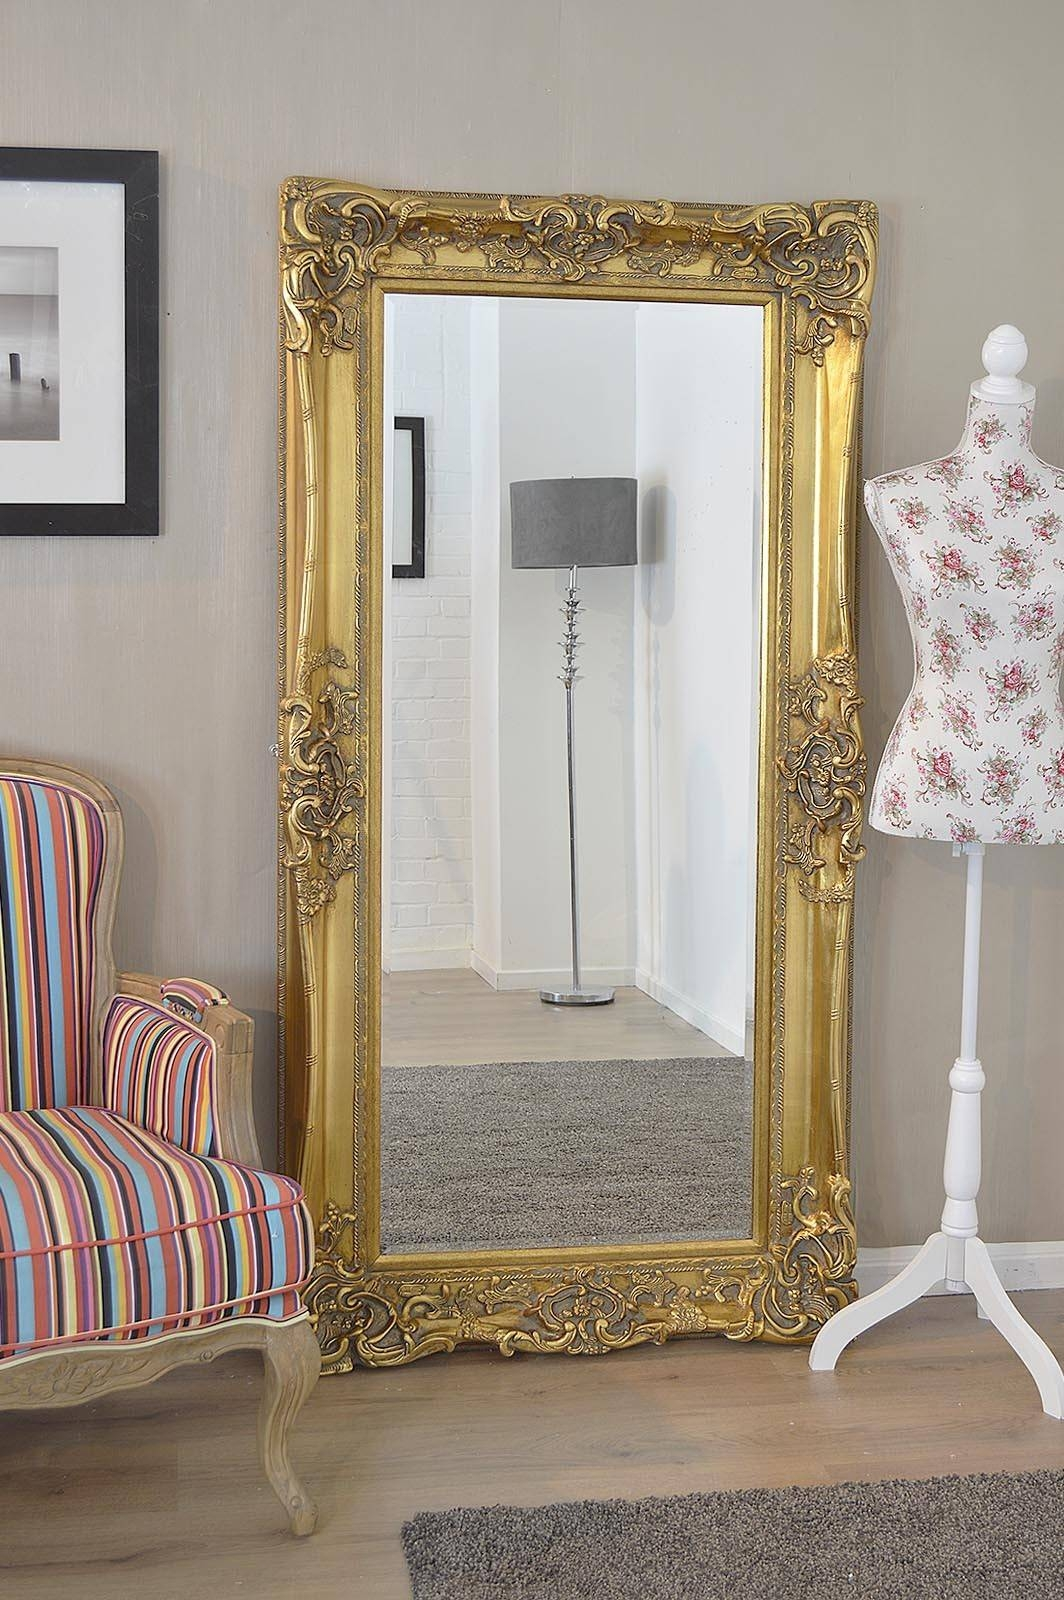 Classic Impression On Antique Wall Mirrors | Vwho within Large Vintage Mirrors (Image 6 of 25)